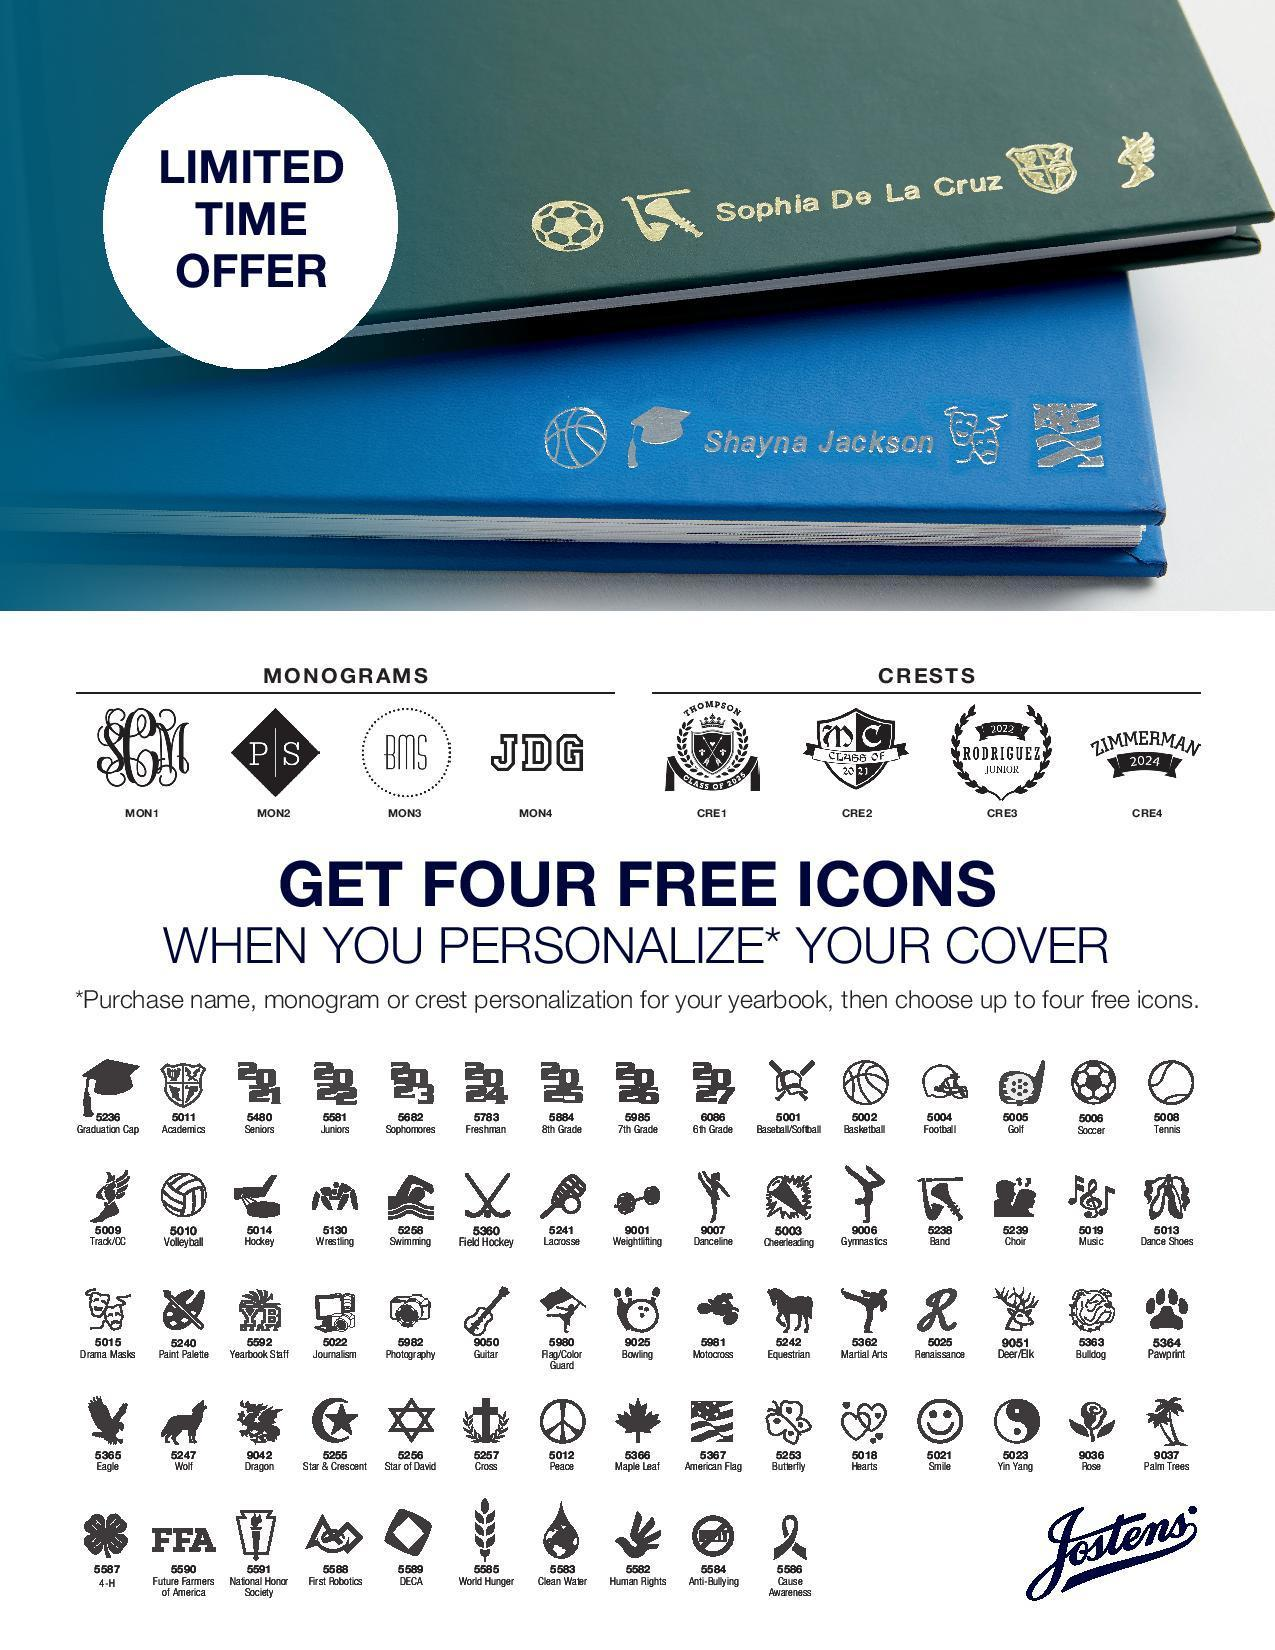 Flyer describing available logos and imprints for yearbook cover